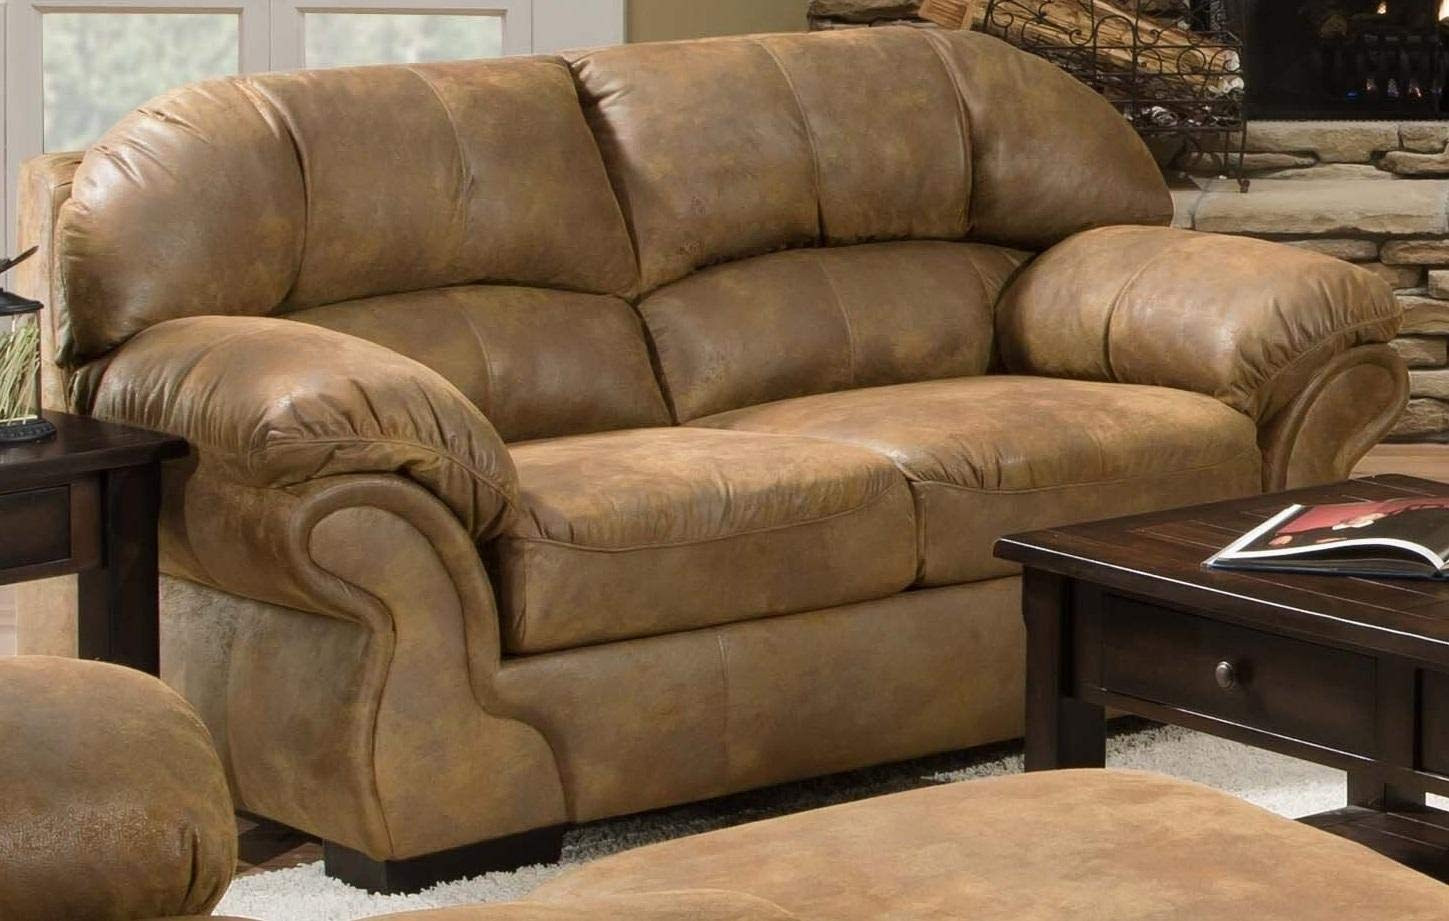 Simmons Upholstery Pinto 6270-02 71'' Loveseat with Split Back Cushion, Plush Padded Arms, Microfiber Upholstery and Block Feet in Tobacco